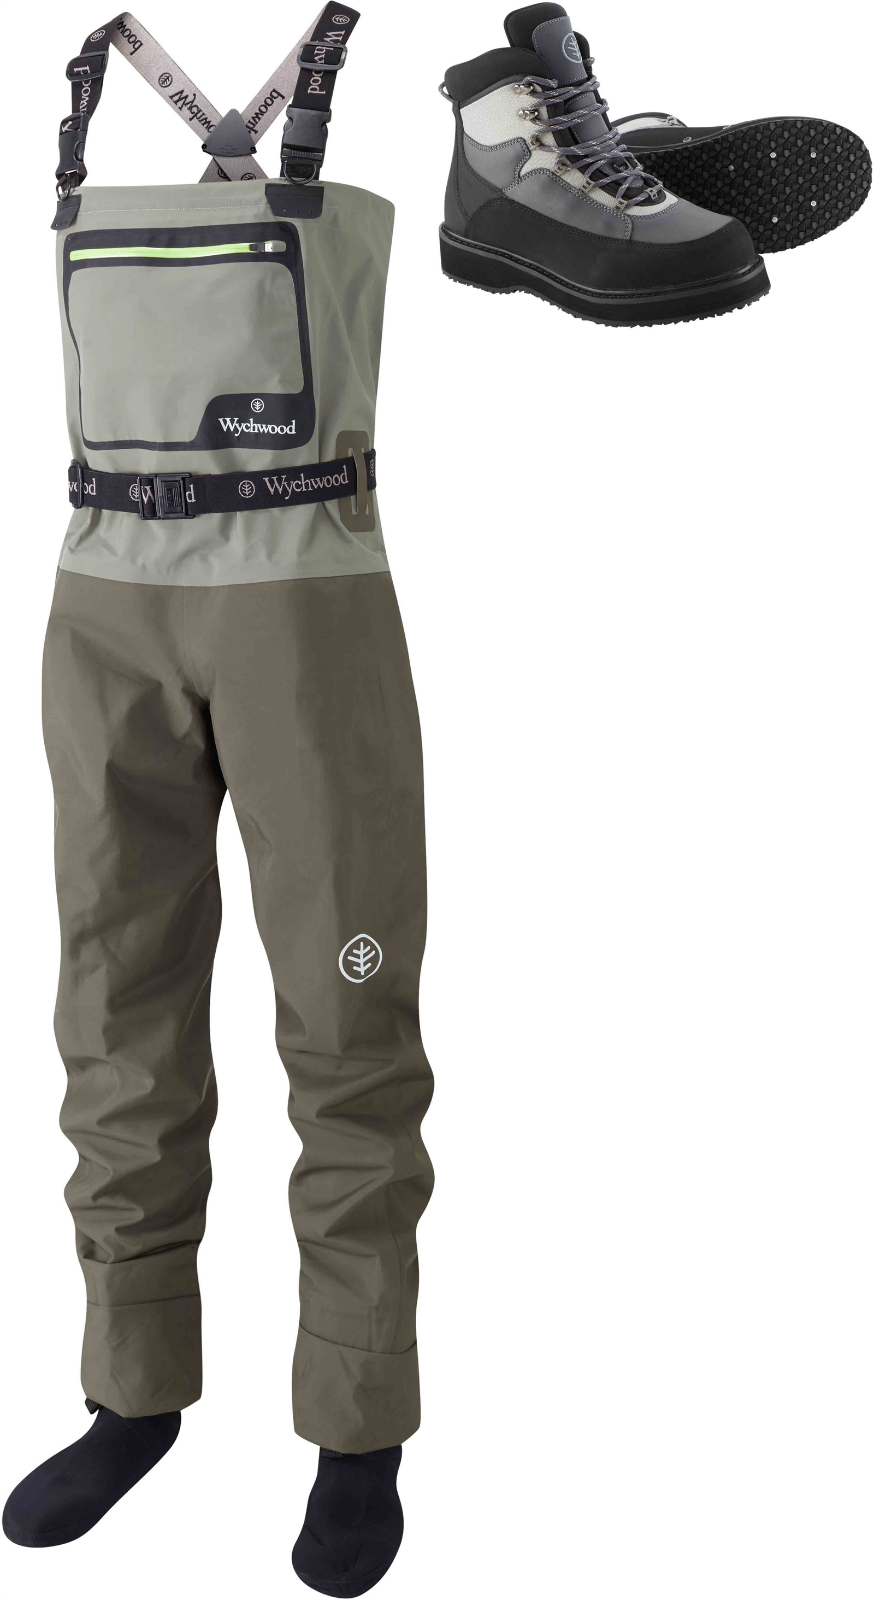 Wychwood New SDS Gorge Breathable Breathable Breathable Chest Fly Fishing Wader + Free Wading Stiefel 6cdc4c